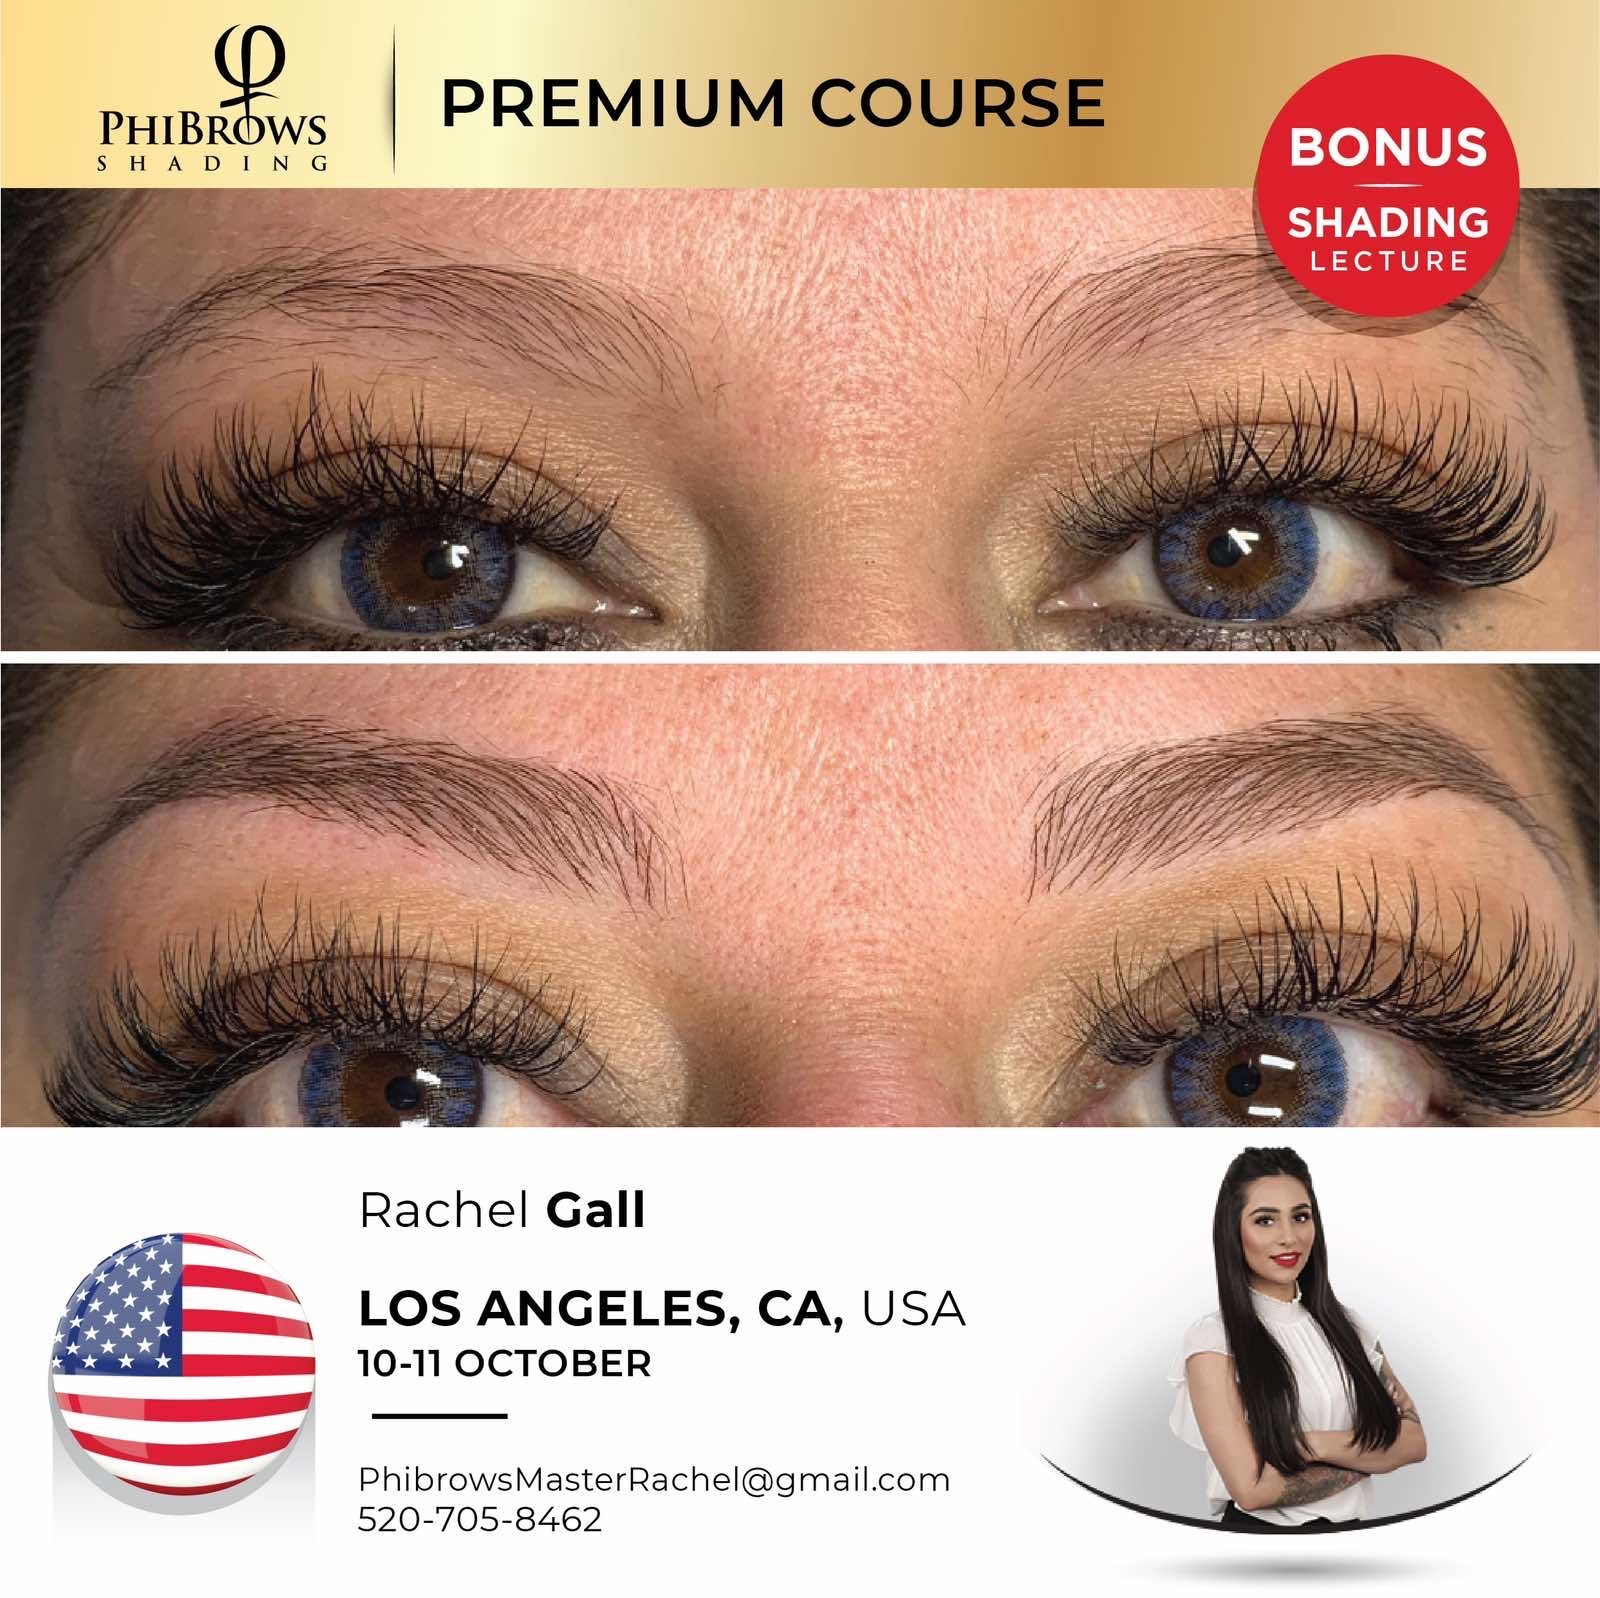 20-10-10 Phibrows Microblading Training Los Angeles – October 10/11